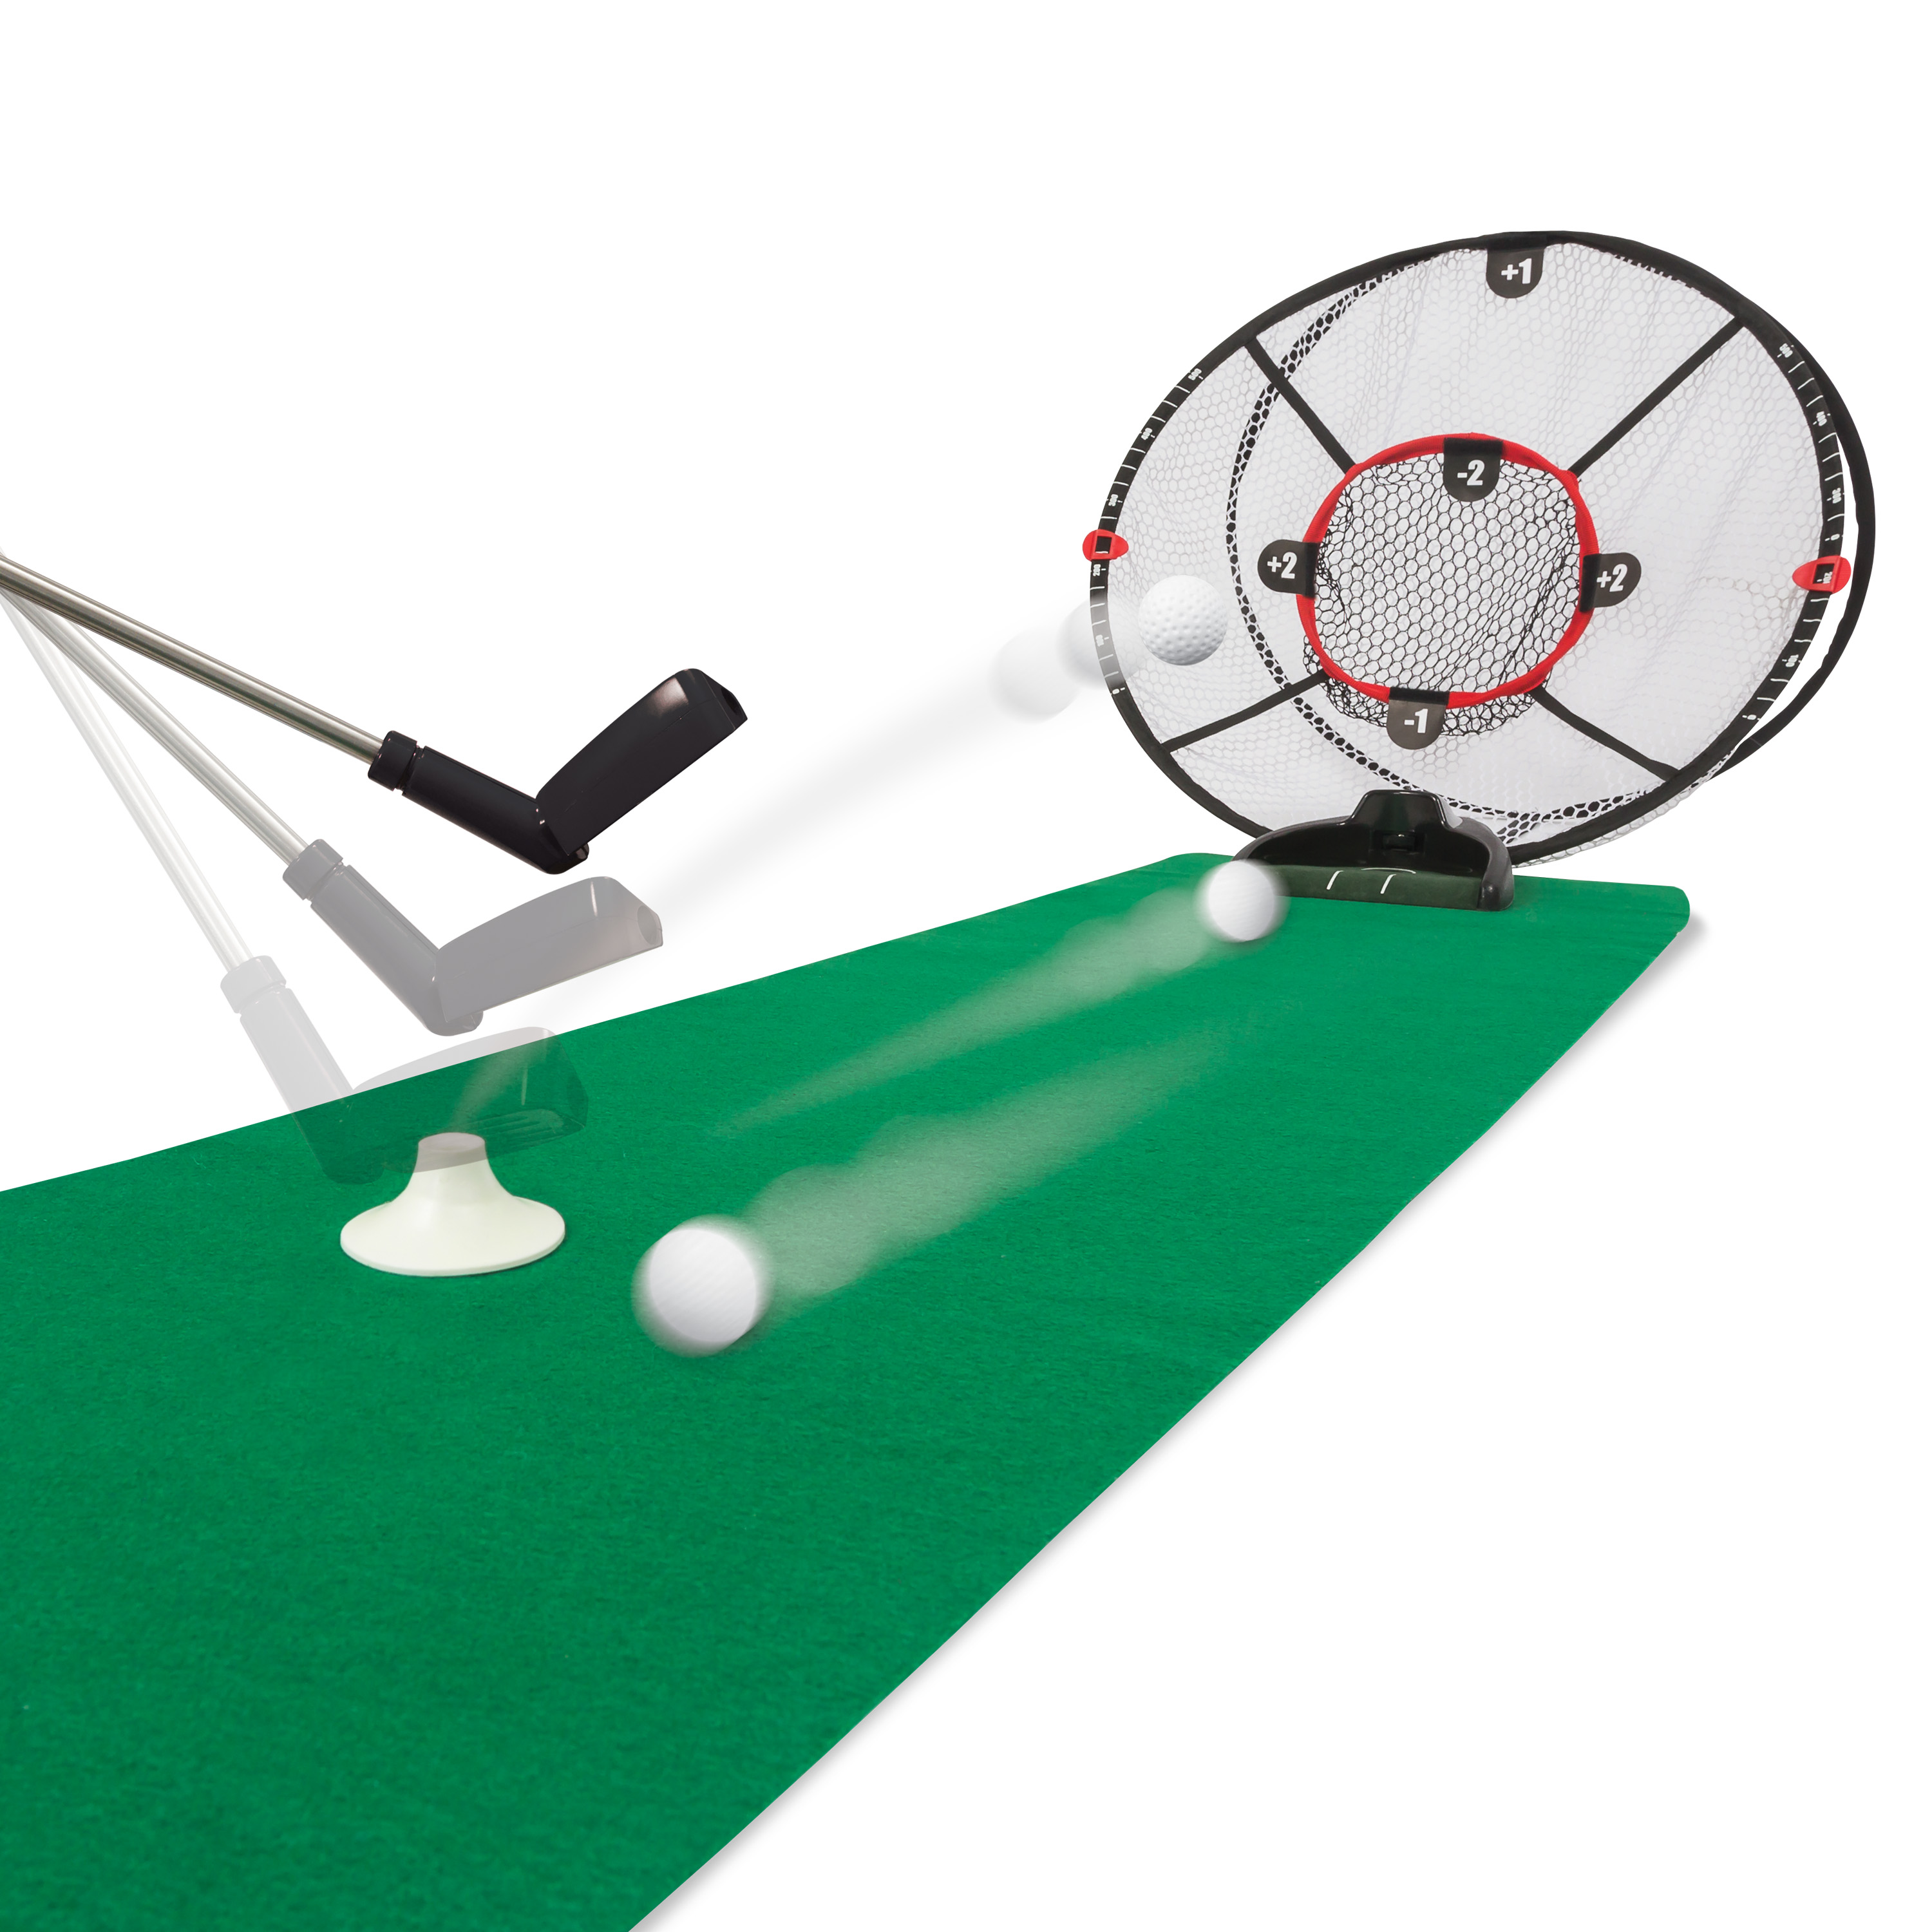 Majik Chip 'N Putt Electronic Golf Trainer